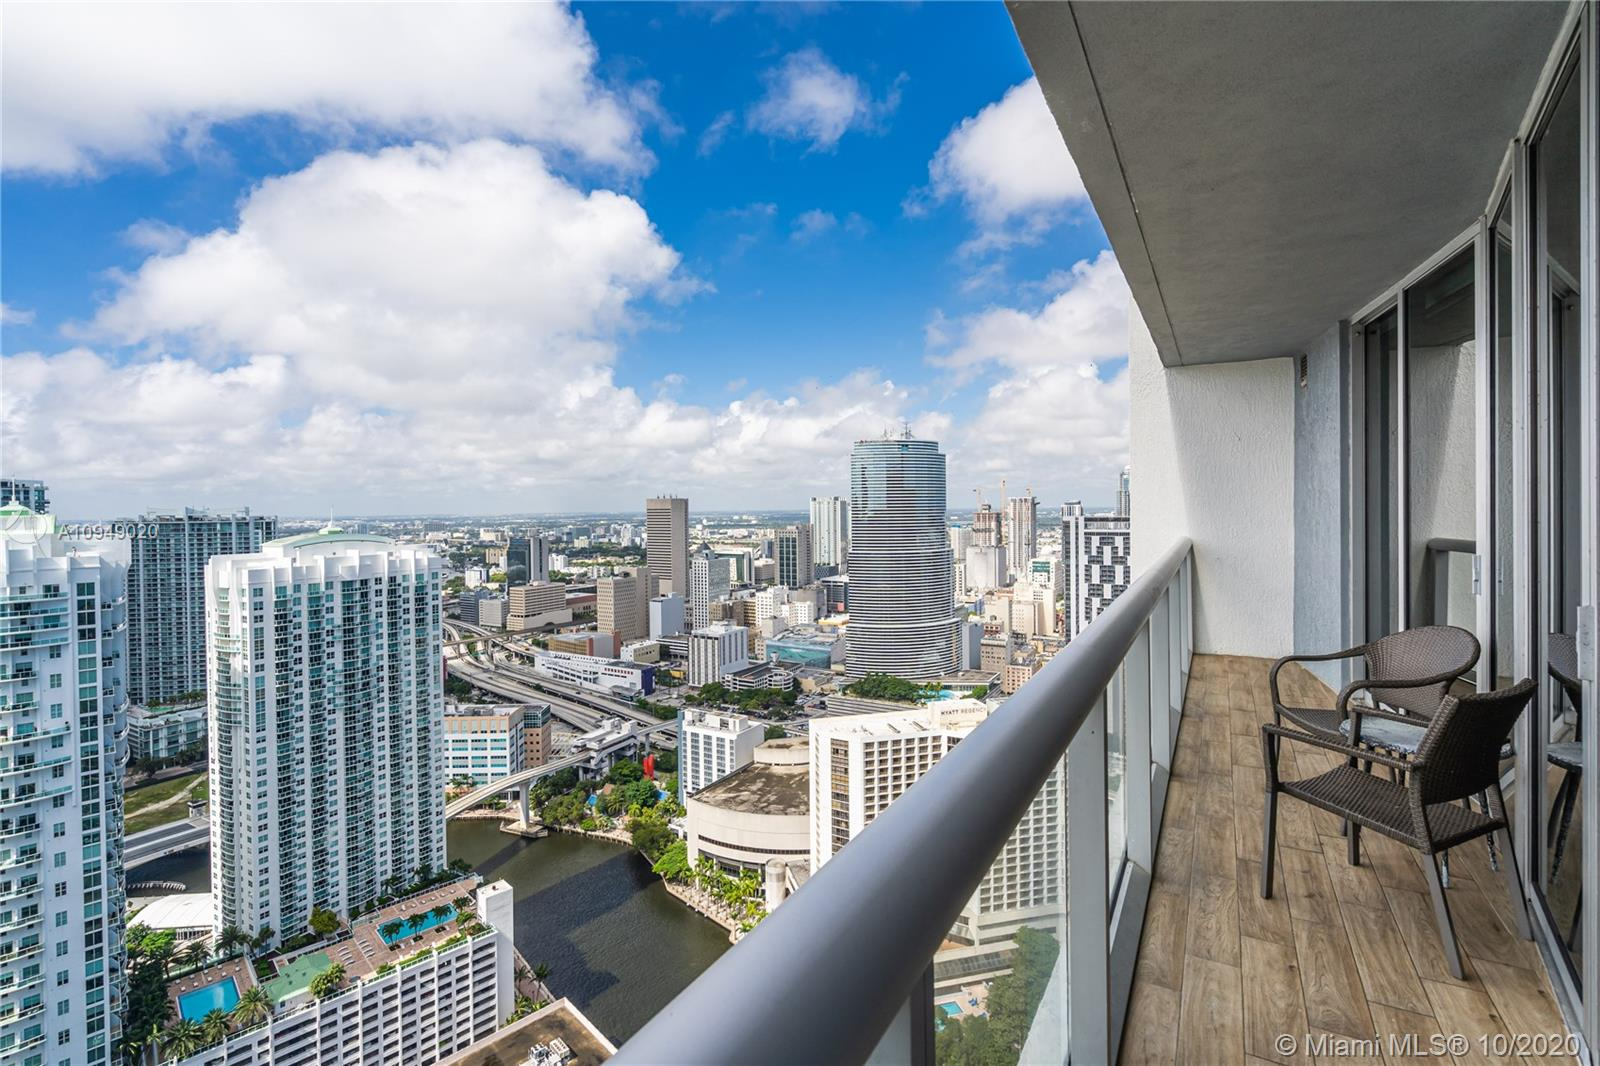 *** SEE VIDEO AT VIRTUAL TOUR*** Bright and smart 1 bedroom, 1 bathroom apartment. Completely upgraded, ready to move in. Turnkey furnished and fully equipped for short term rentals. Porcelain Flooring, Electric Shades, Lutron Light, Kitchen with Italian Cabinets. Wood doors. West exposure offers gorgeous panoramic vistas of the River and the City. Full - Service unique and Deluxe 5-Star high-rise building in the heart of Brickell offers no restrictions for short term rental. AIRBNB Allowed.